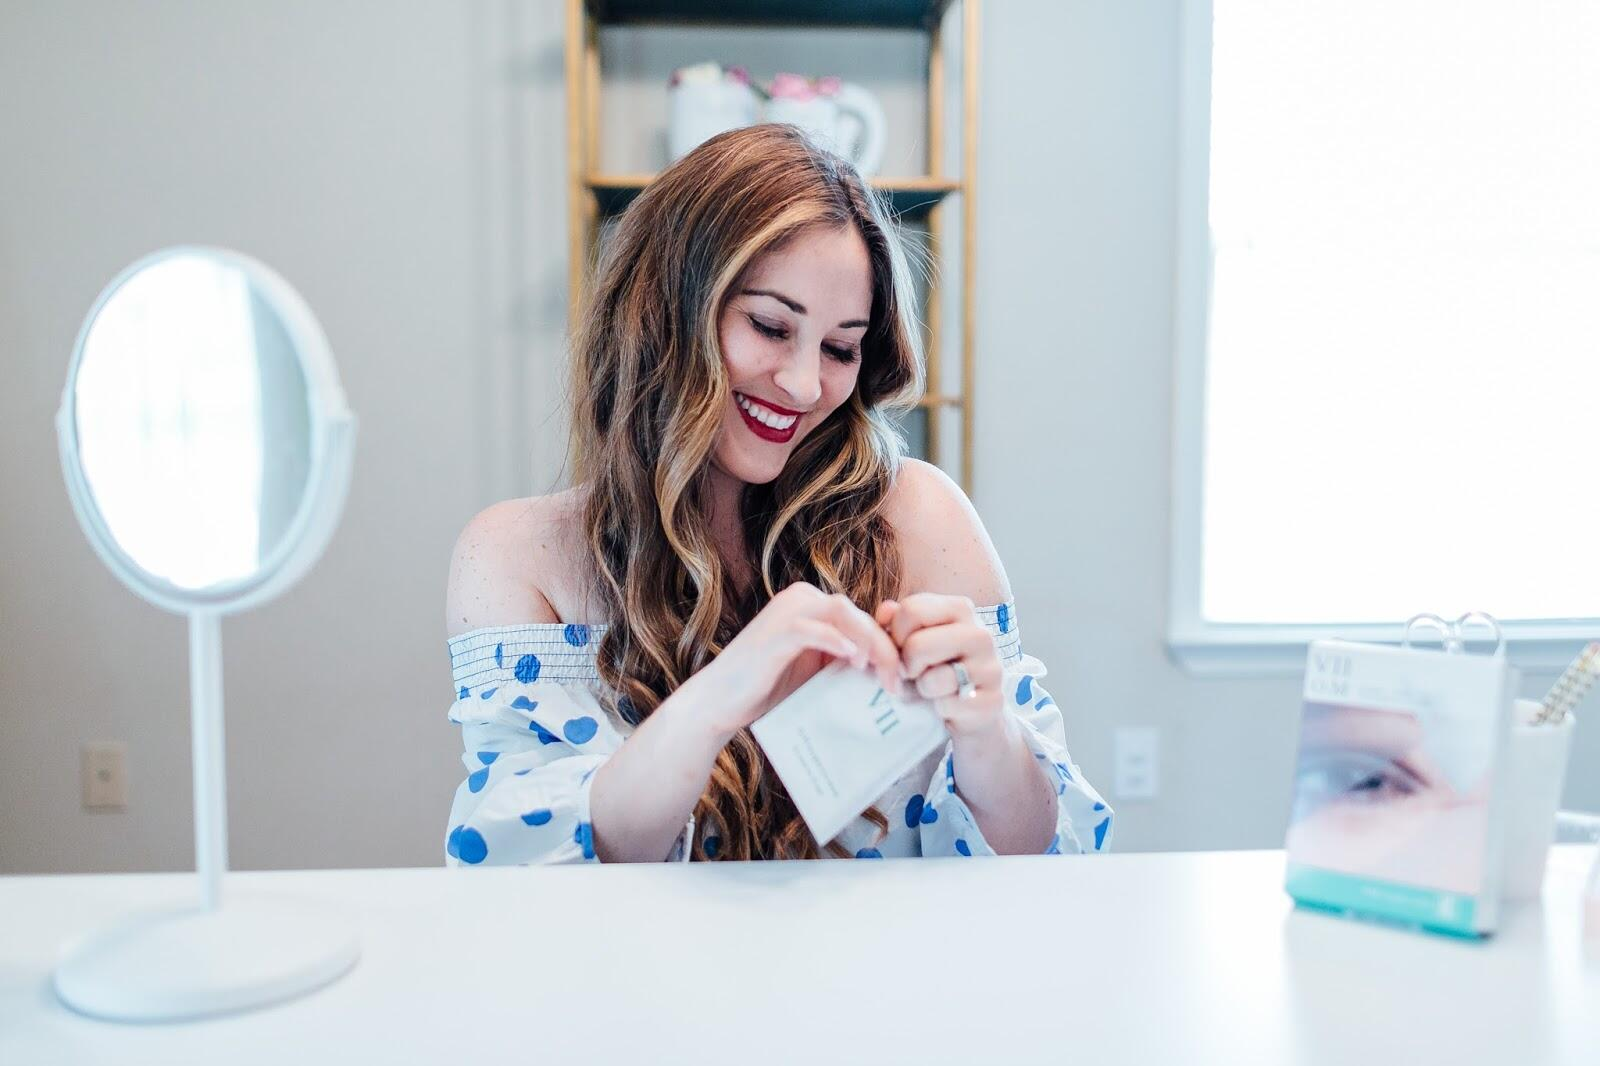 The Eye Mask For Sleeping: The Secrets to Waking up Looking & Feeling Refreshed by fashion blogger Laura from Walking in Memphis in High Heels